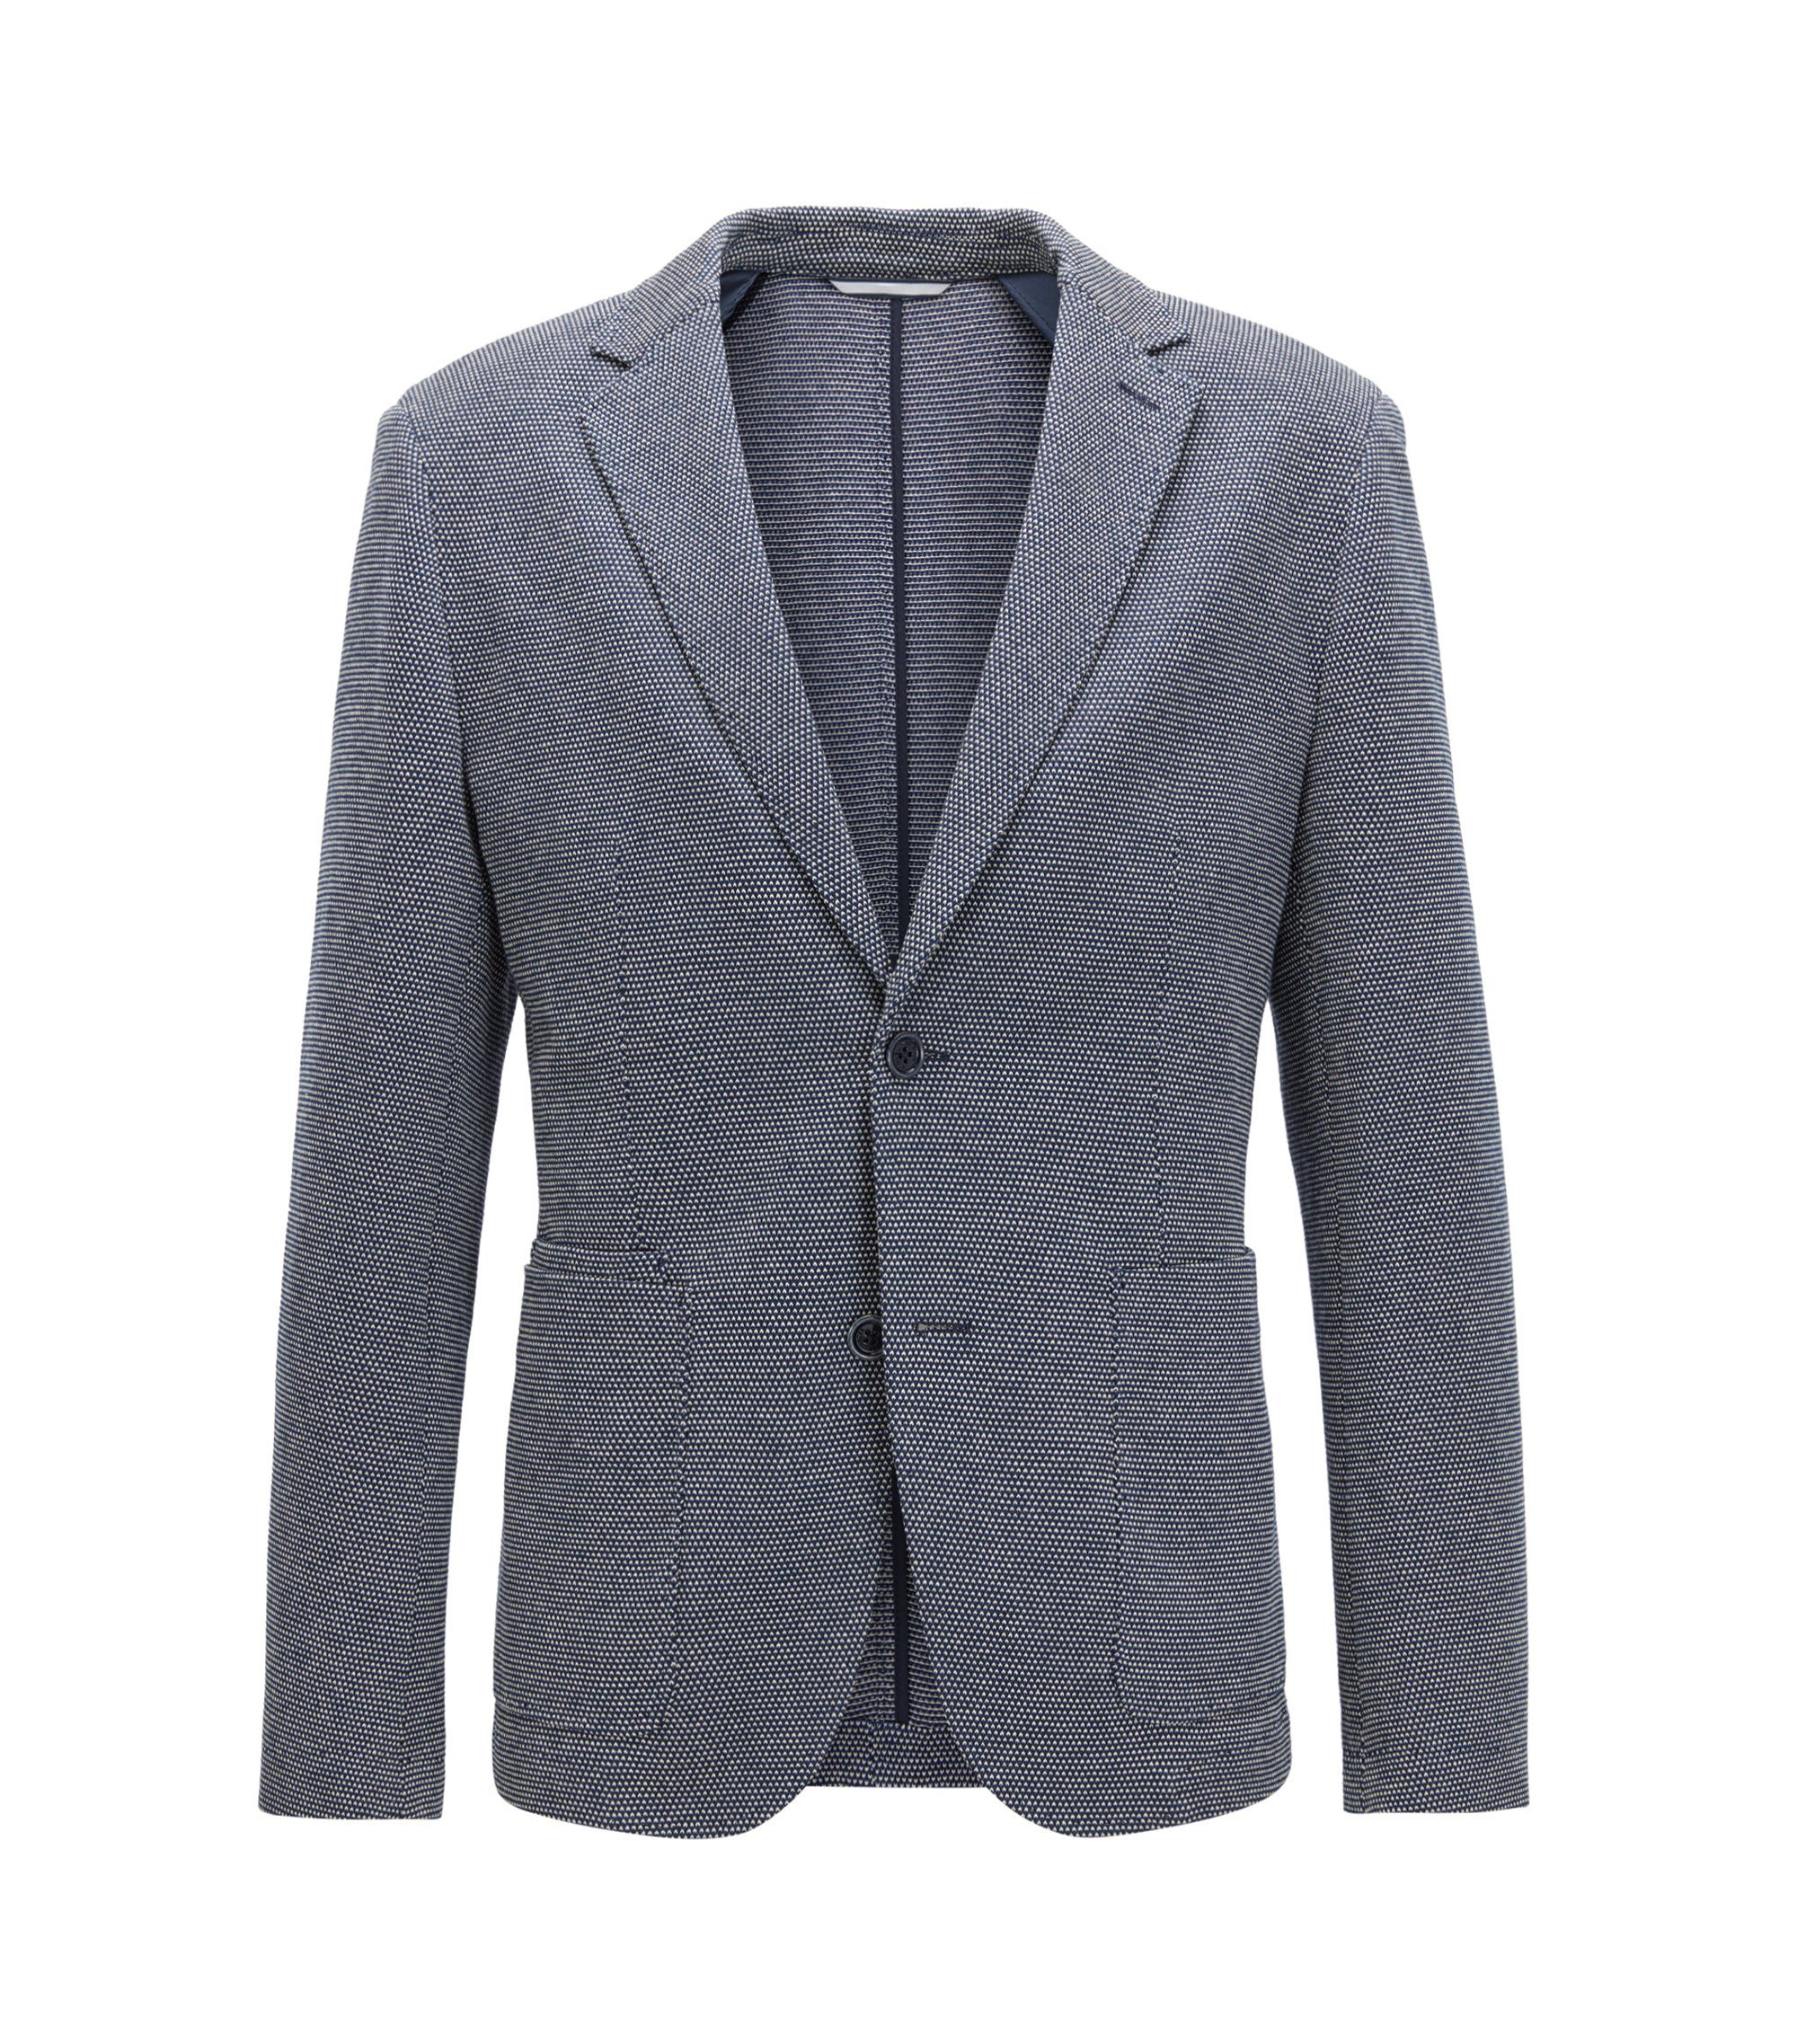 Cotton Linen Sport Coat, Slim Fit | Neldon J, Dark Blue